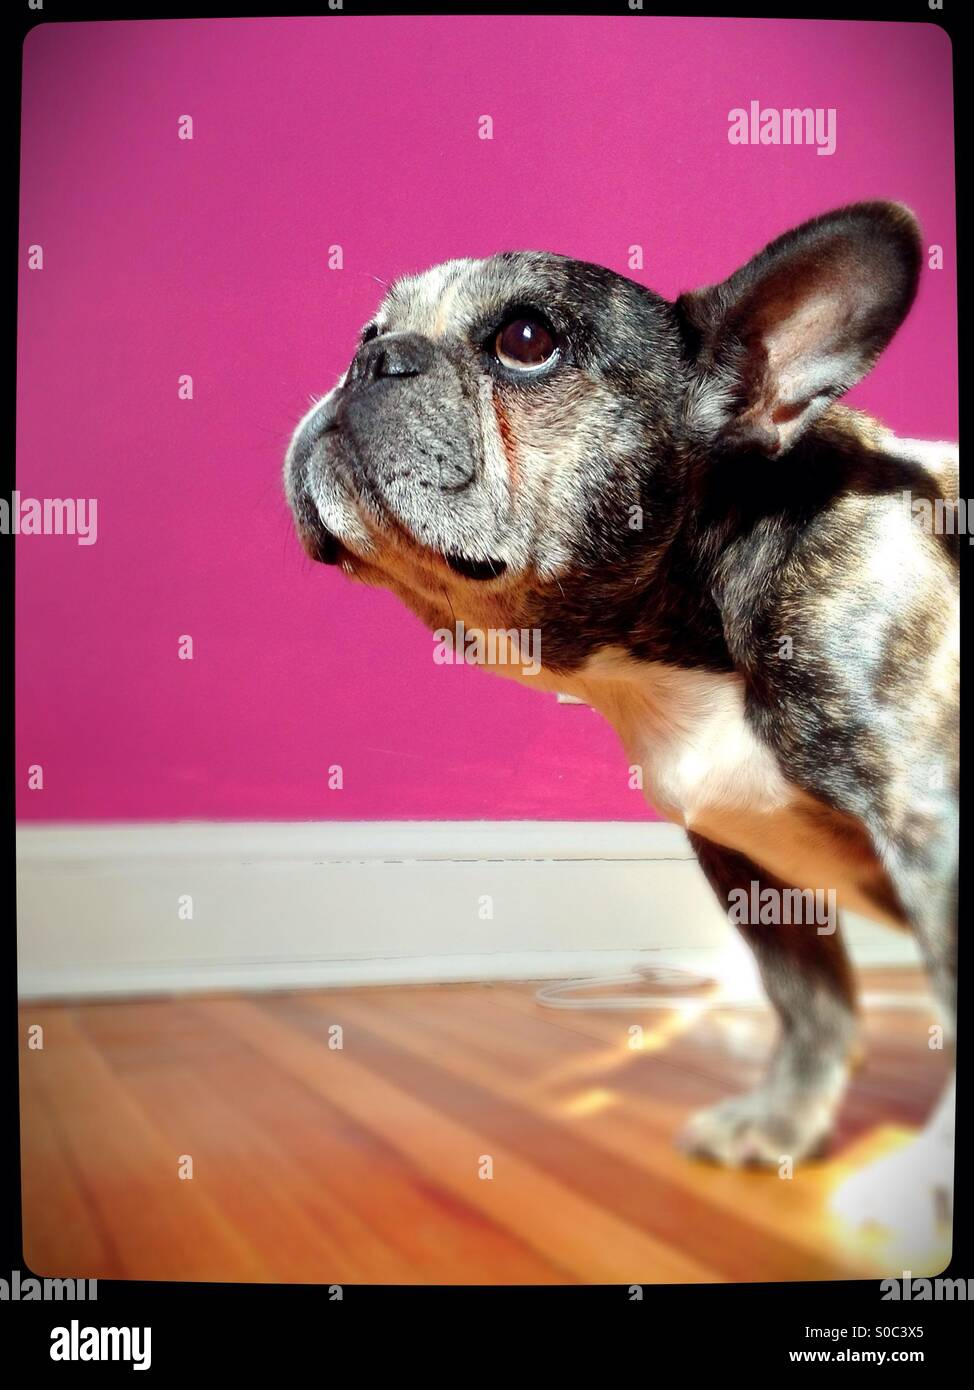 An old French bulldog, looking innocent. - Stock Image